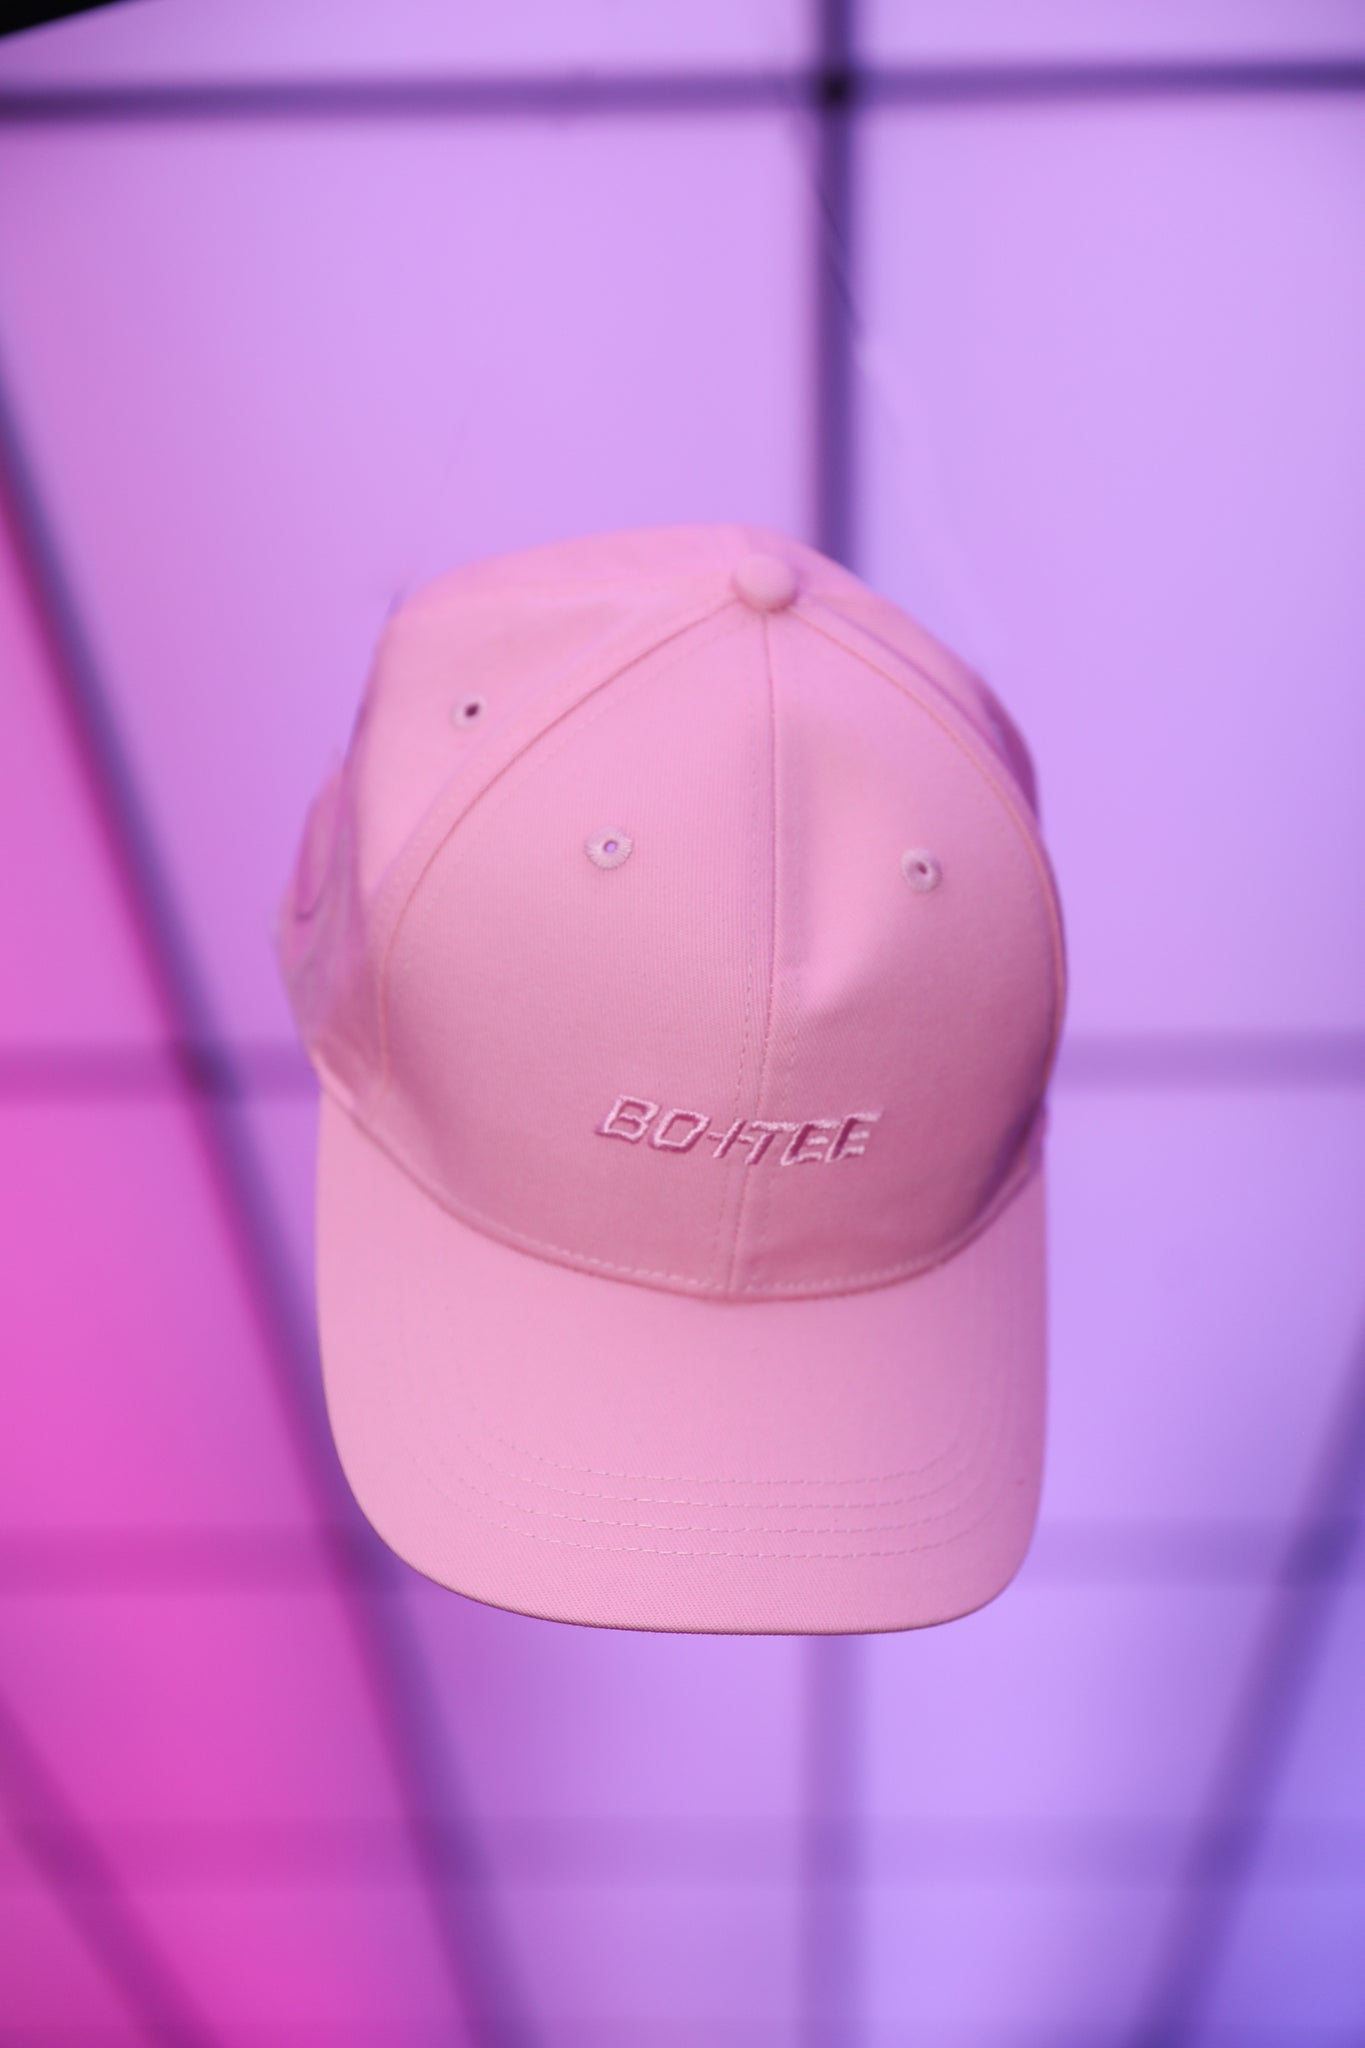 Pink baseball cap with embroidered logo in the centre. Image 3 of 6.